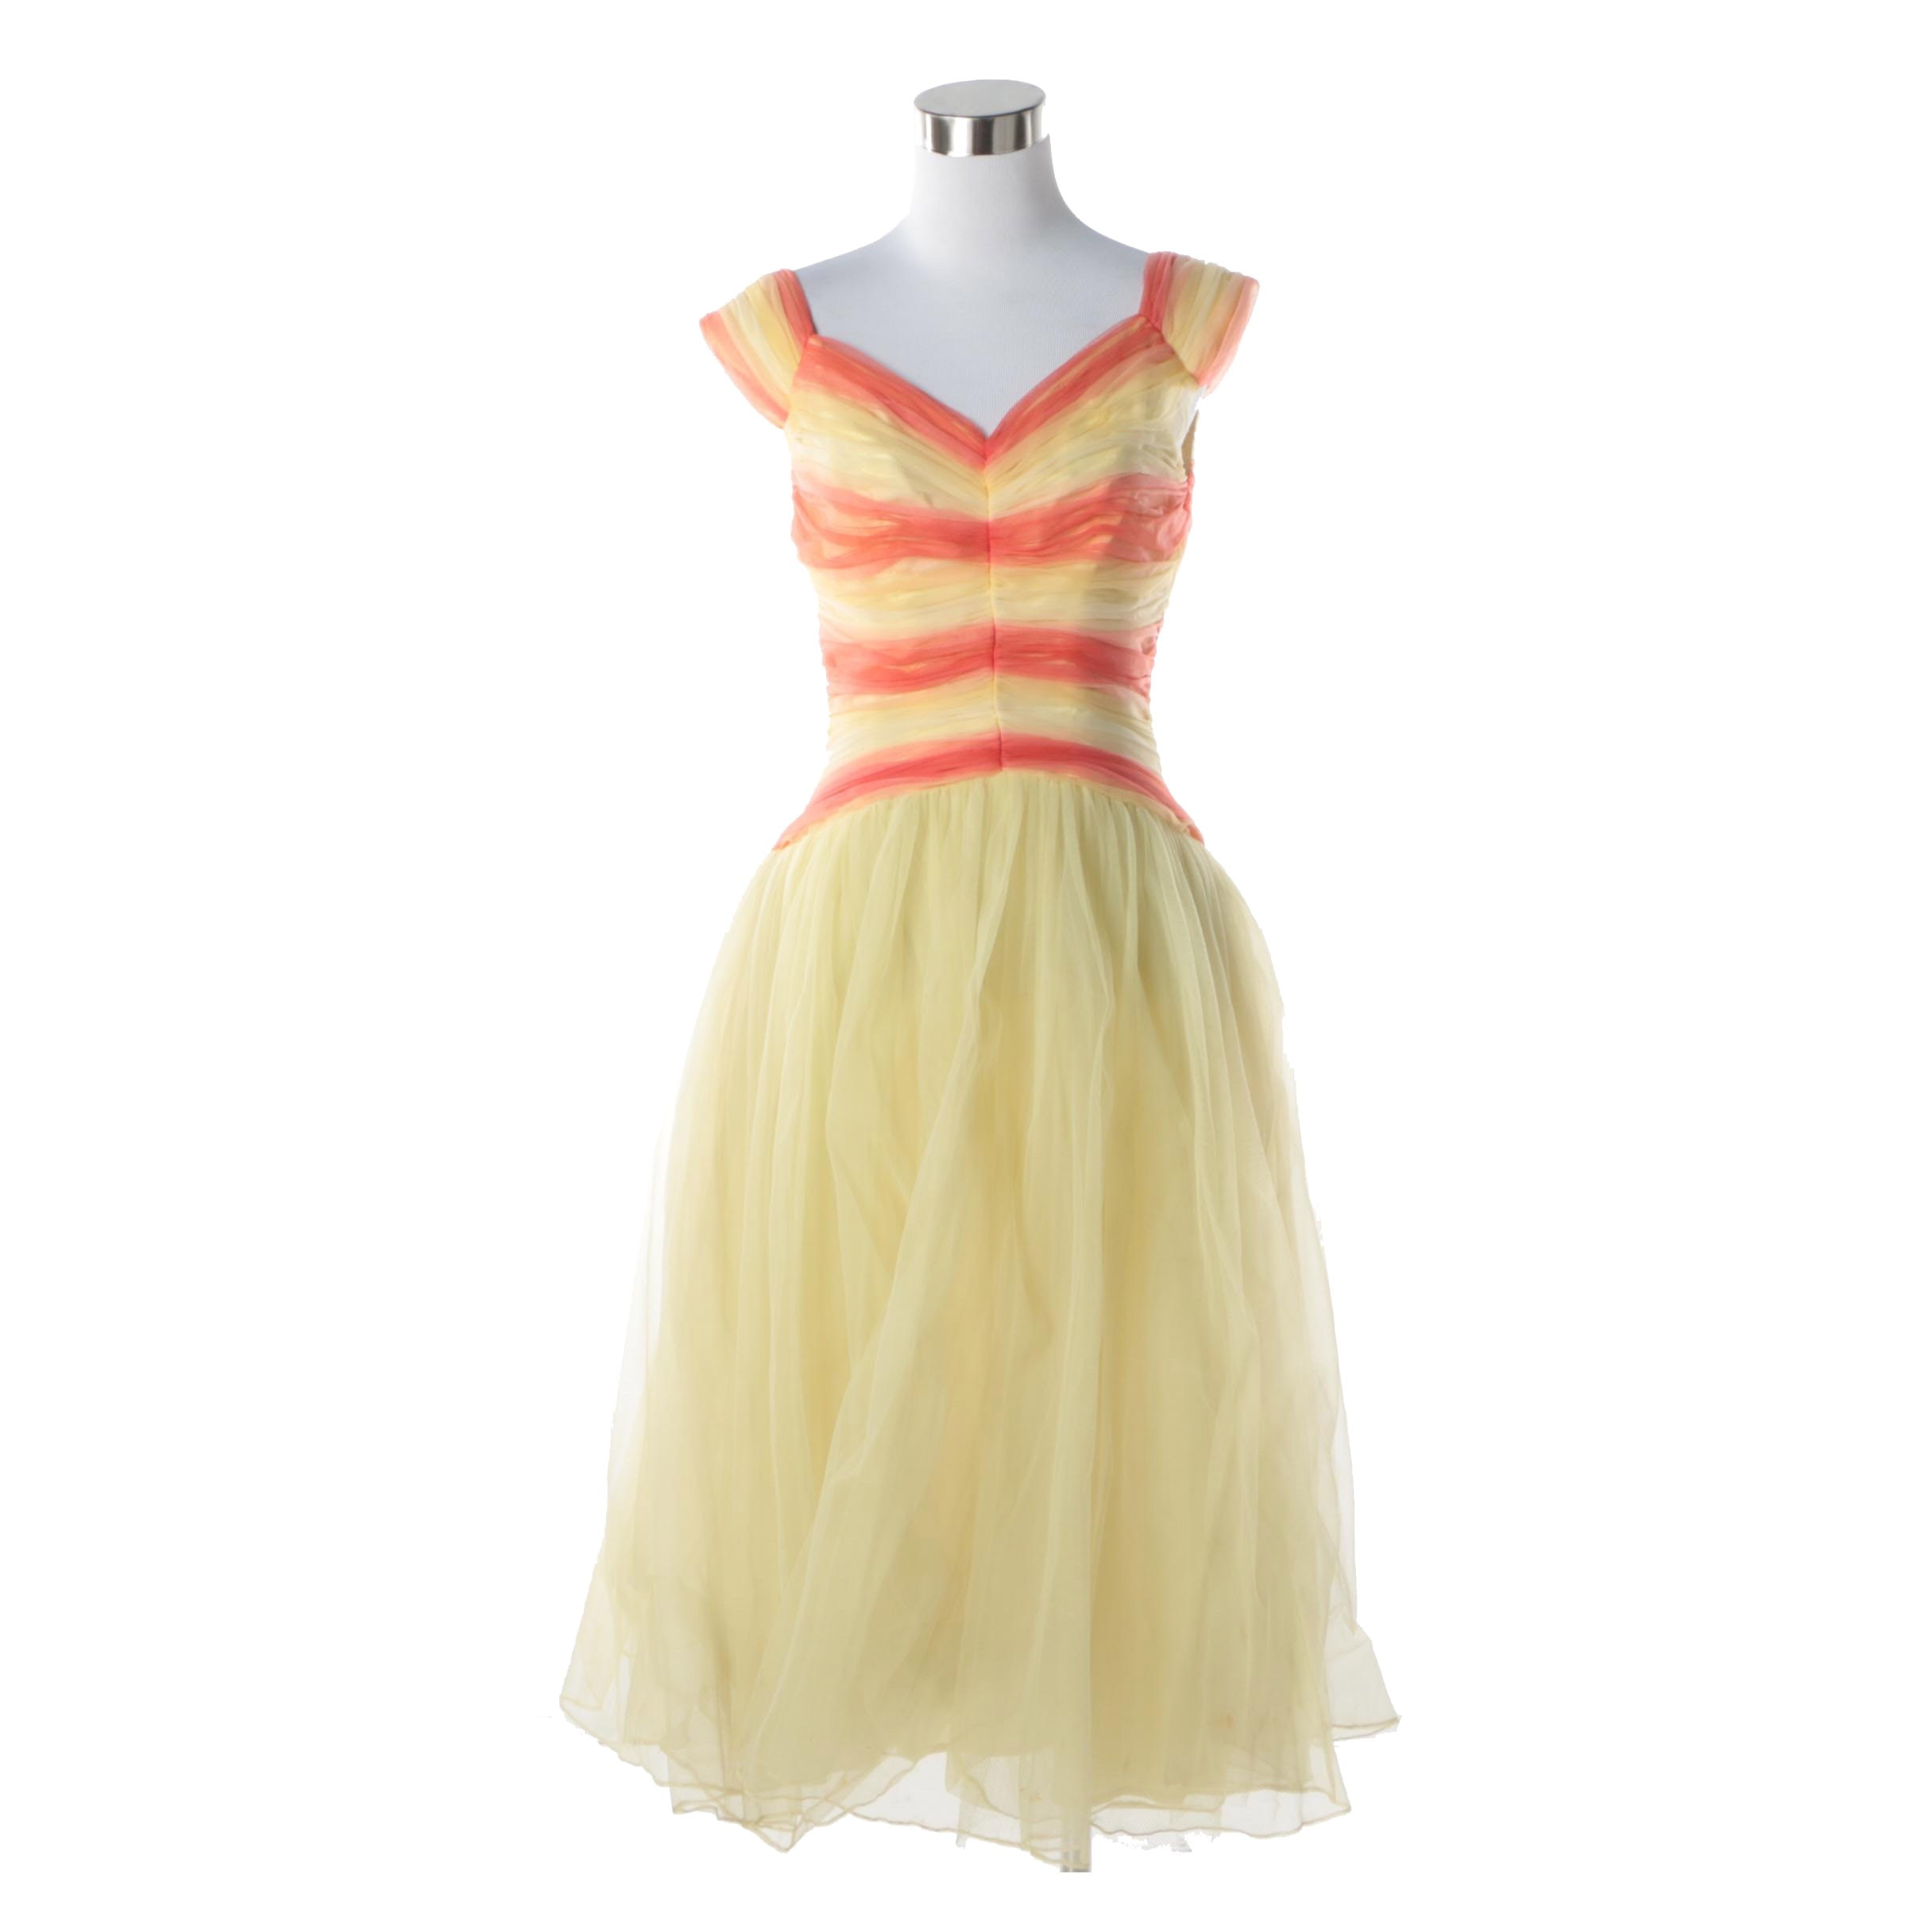 1950s Vintage Fred Perlberg Originals Yellow and Orange Chevron Chiffon Dress